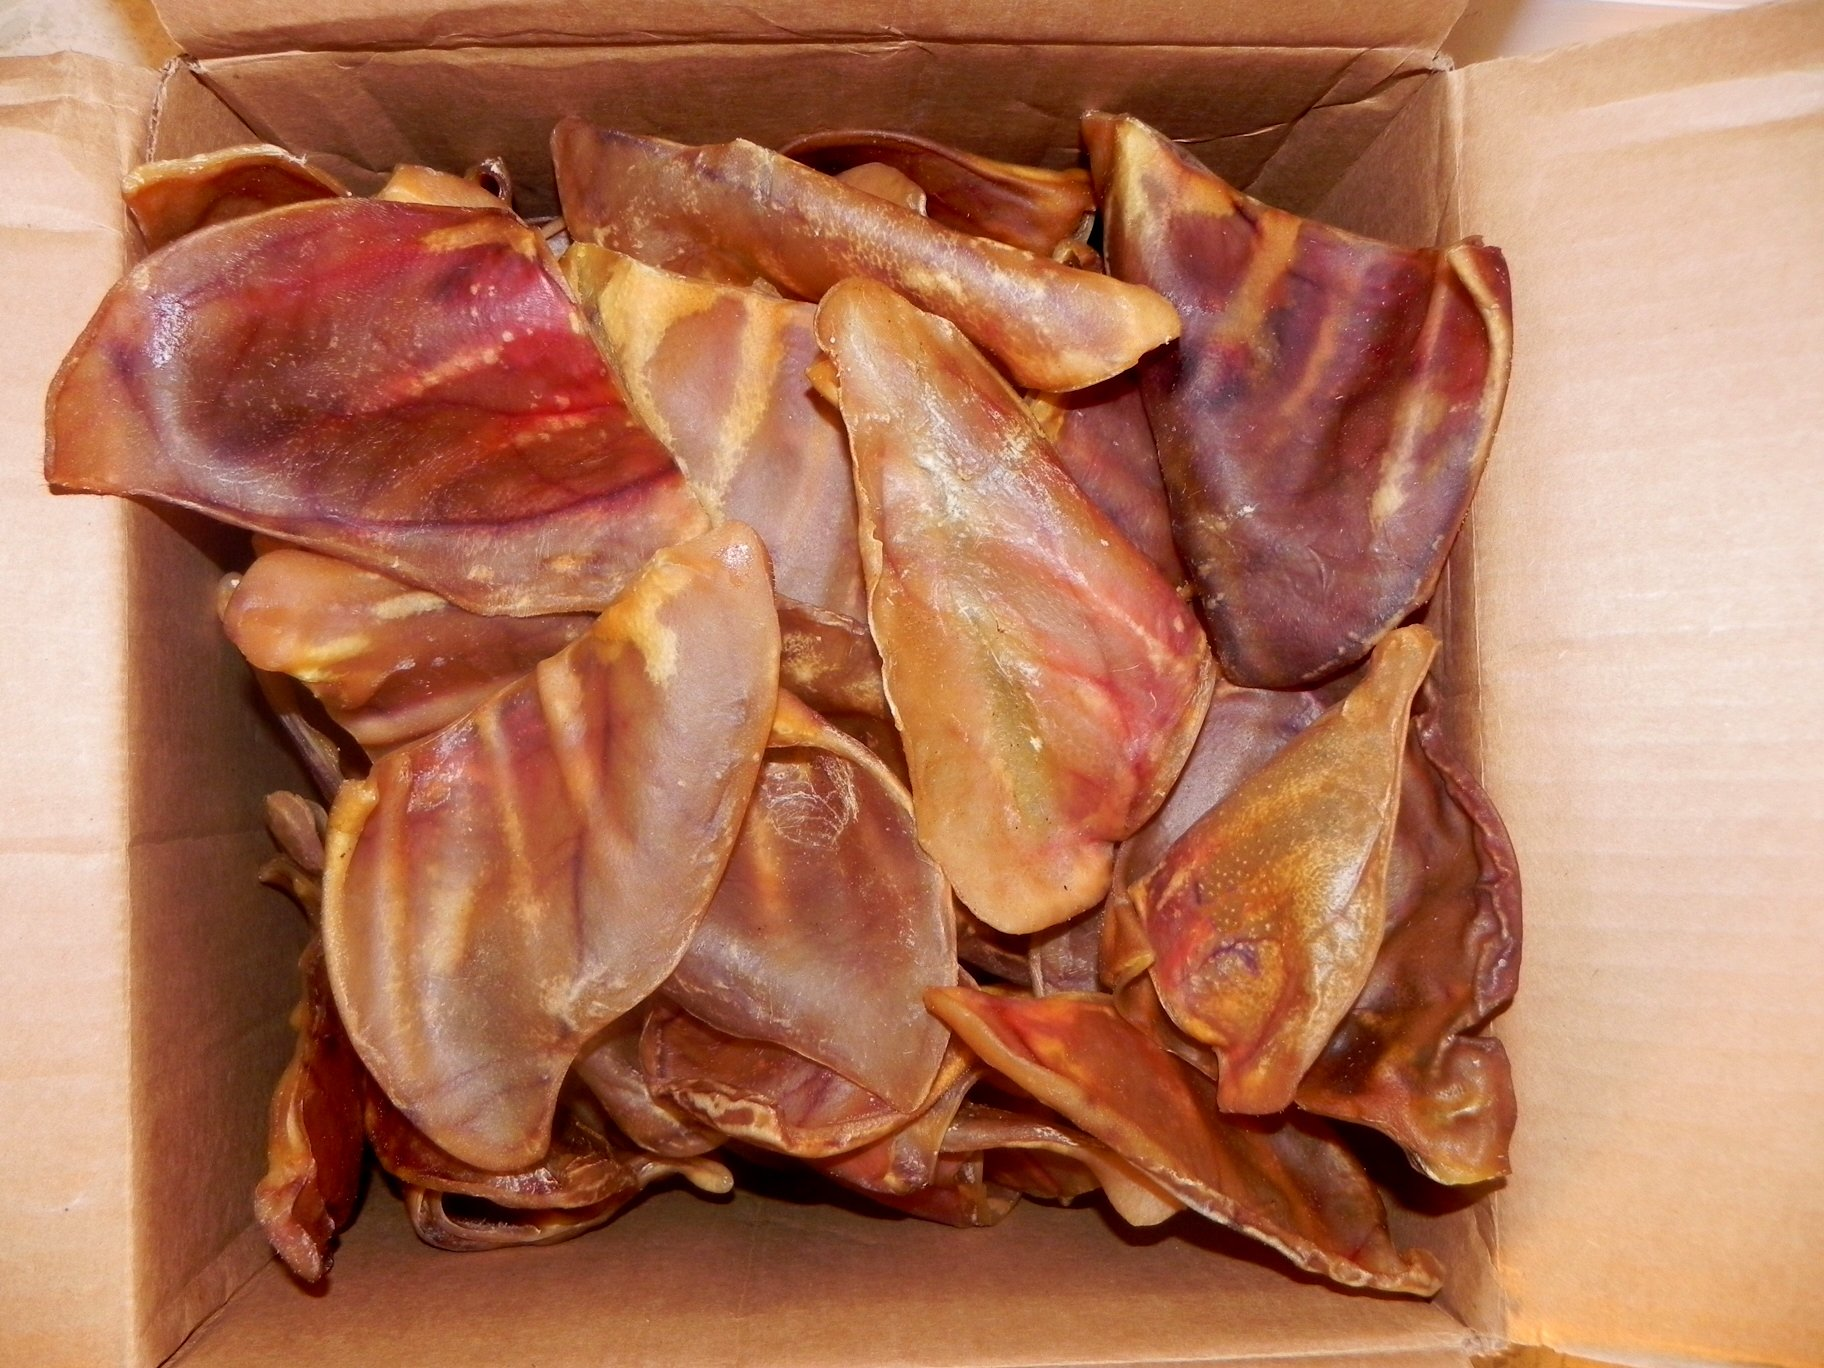 123 Treats Pig Ears for Dogs   Quality Pork Dog Chews 100% Natural Pork Ears Full of Protein for Your Pet (Brazil, 30 Count) by 123 Treats (Image #2)